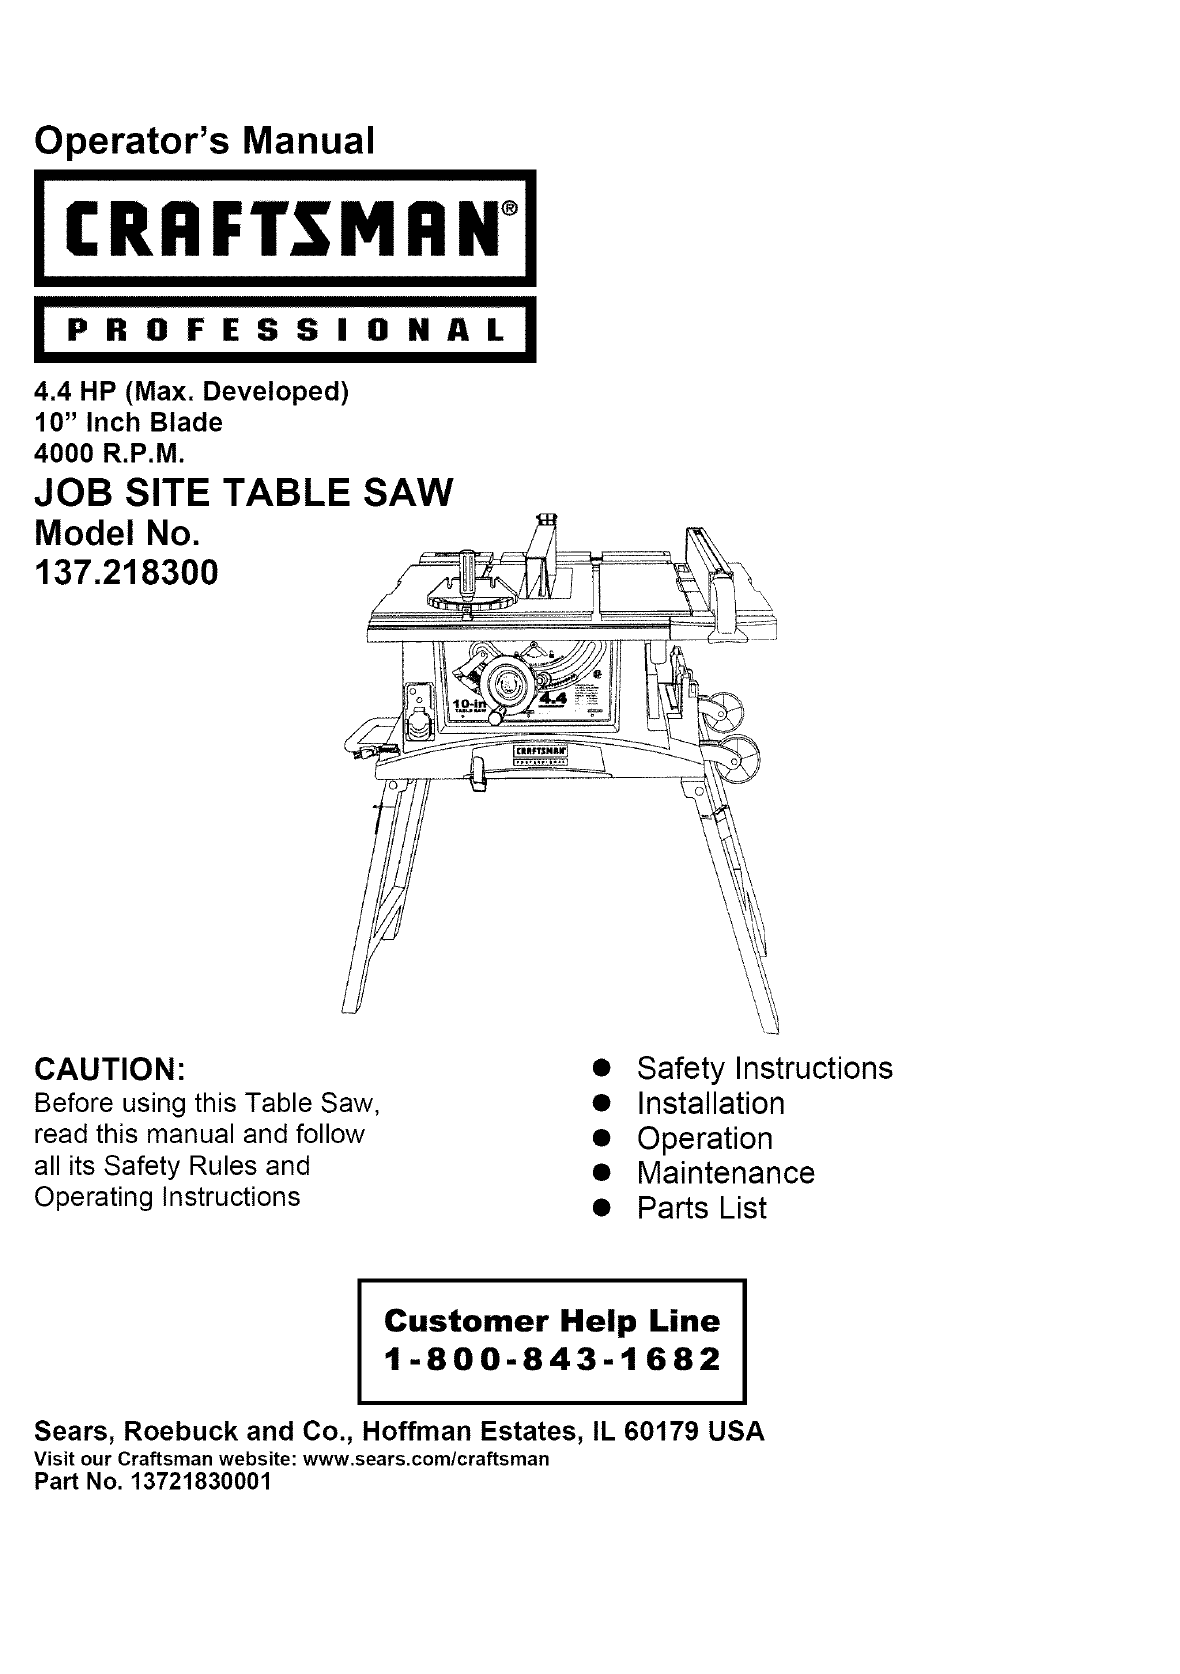 Craftsman 137218300 User Manual Table Saw Manuals And Guides L0409535 1 4 Hp Ii Wiring Diagram